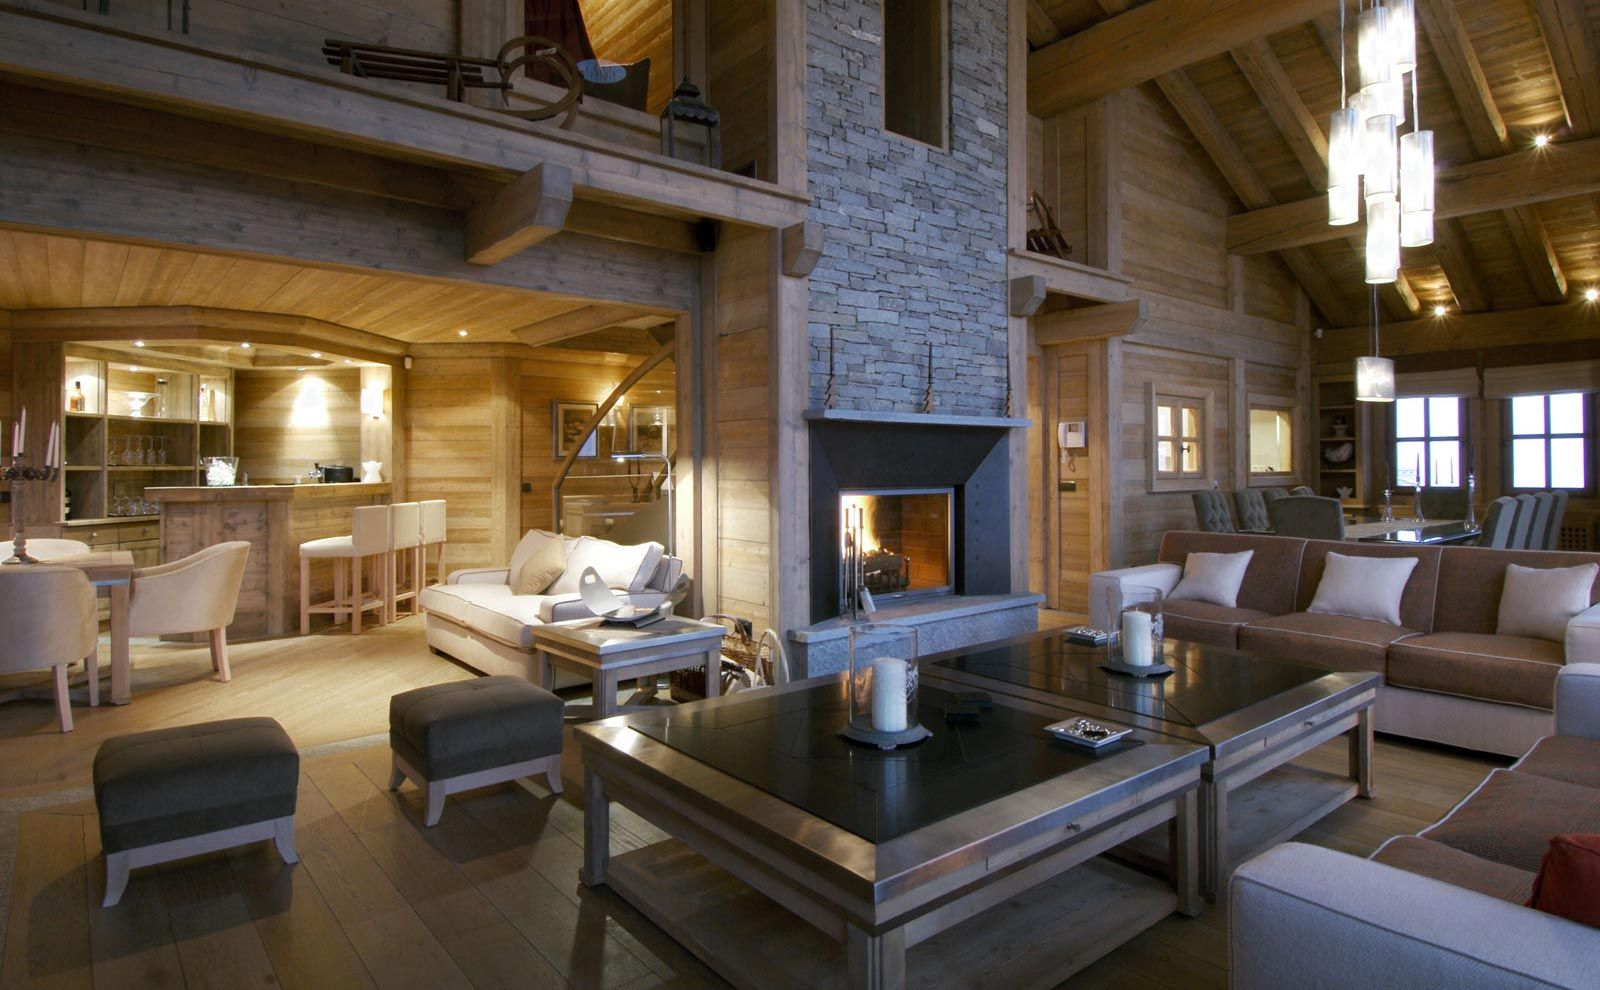 Decoration Moderne Montagne | Cozy And Stylish Mountain Chalets ...